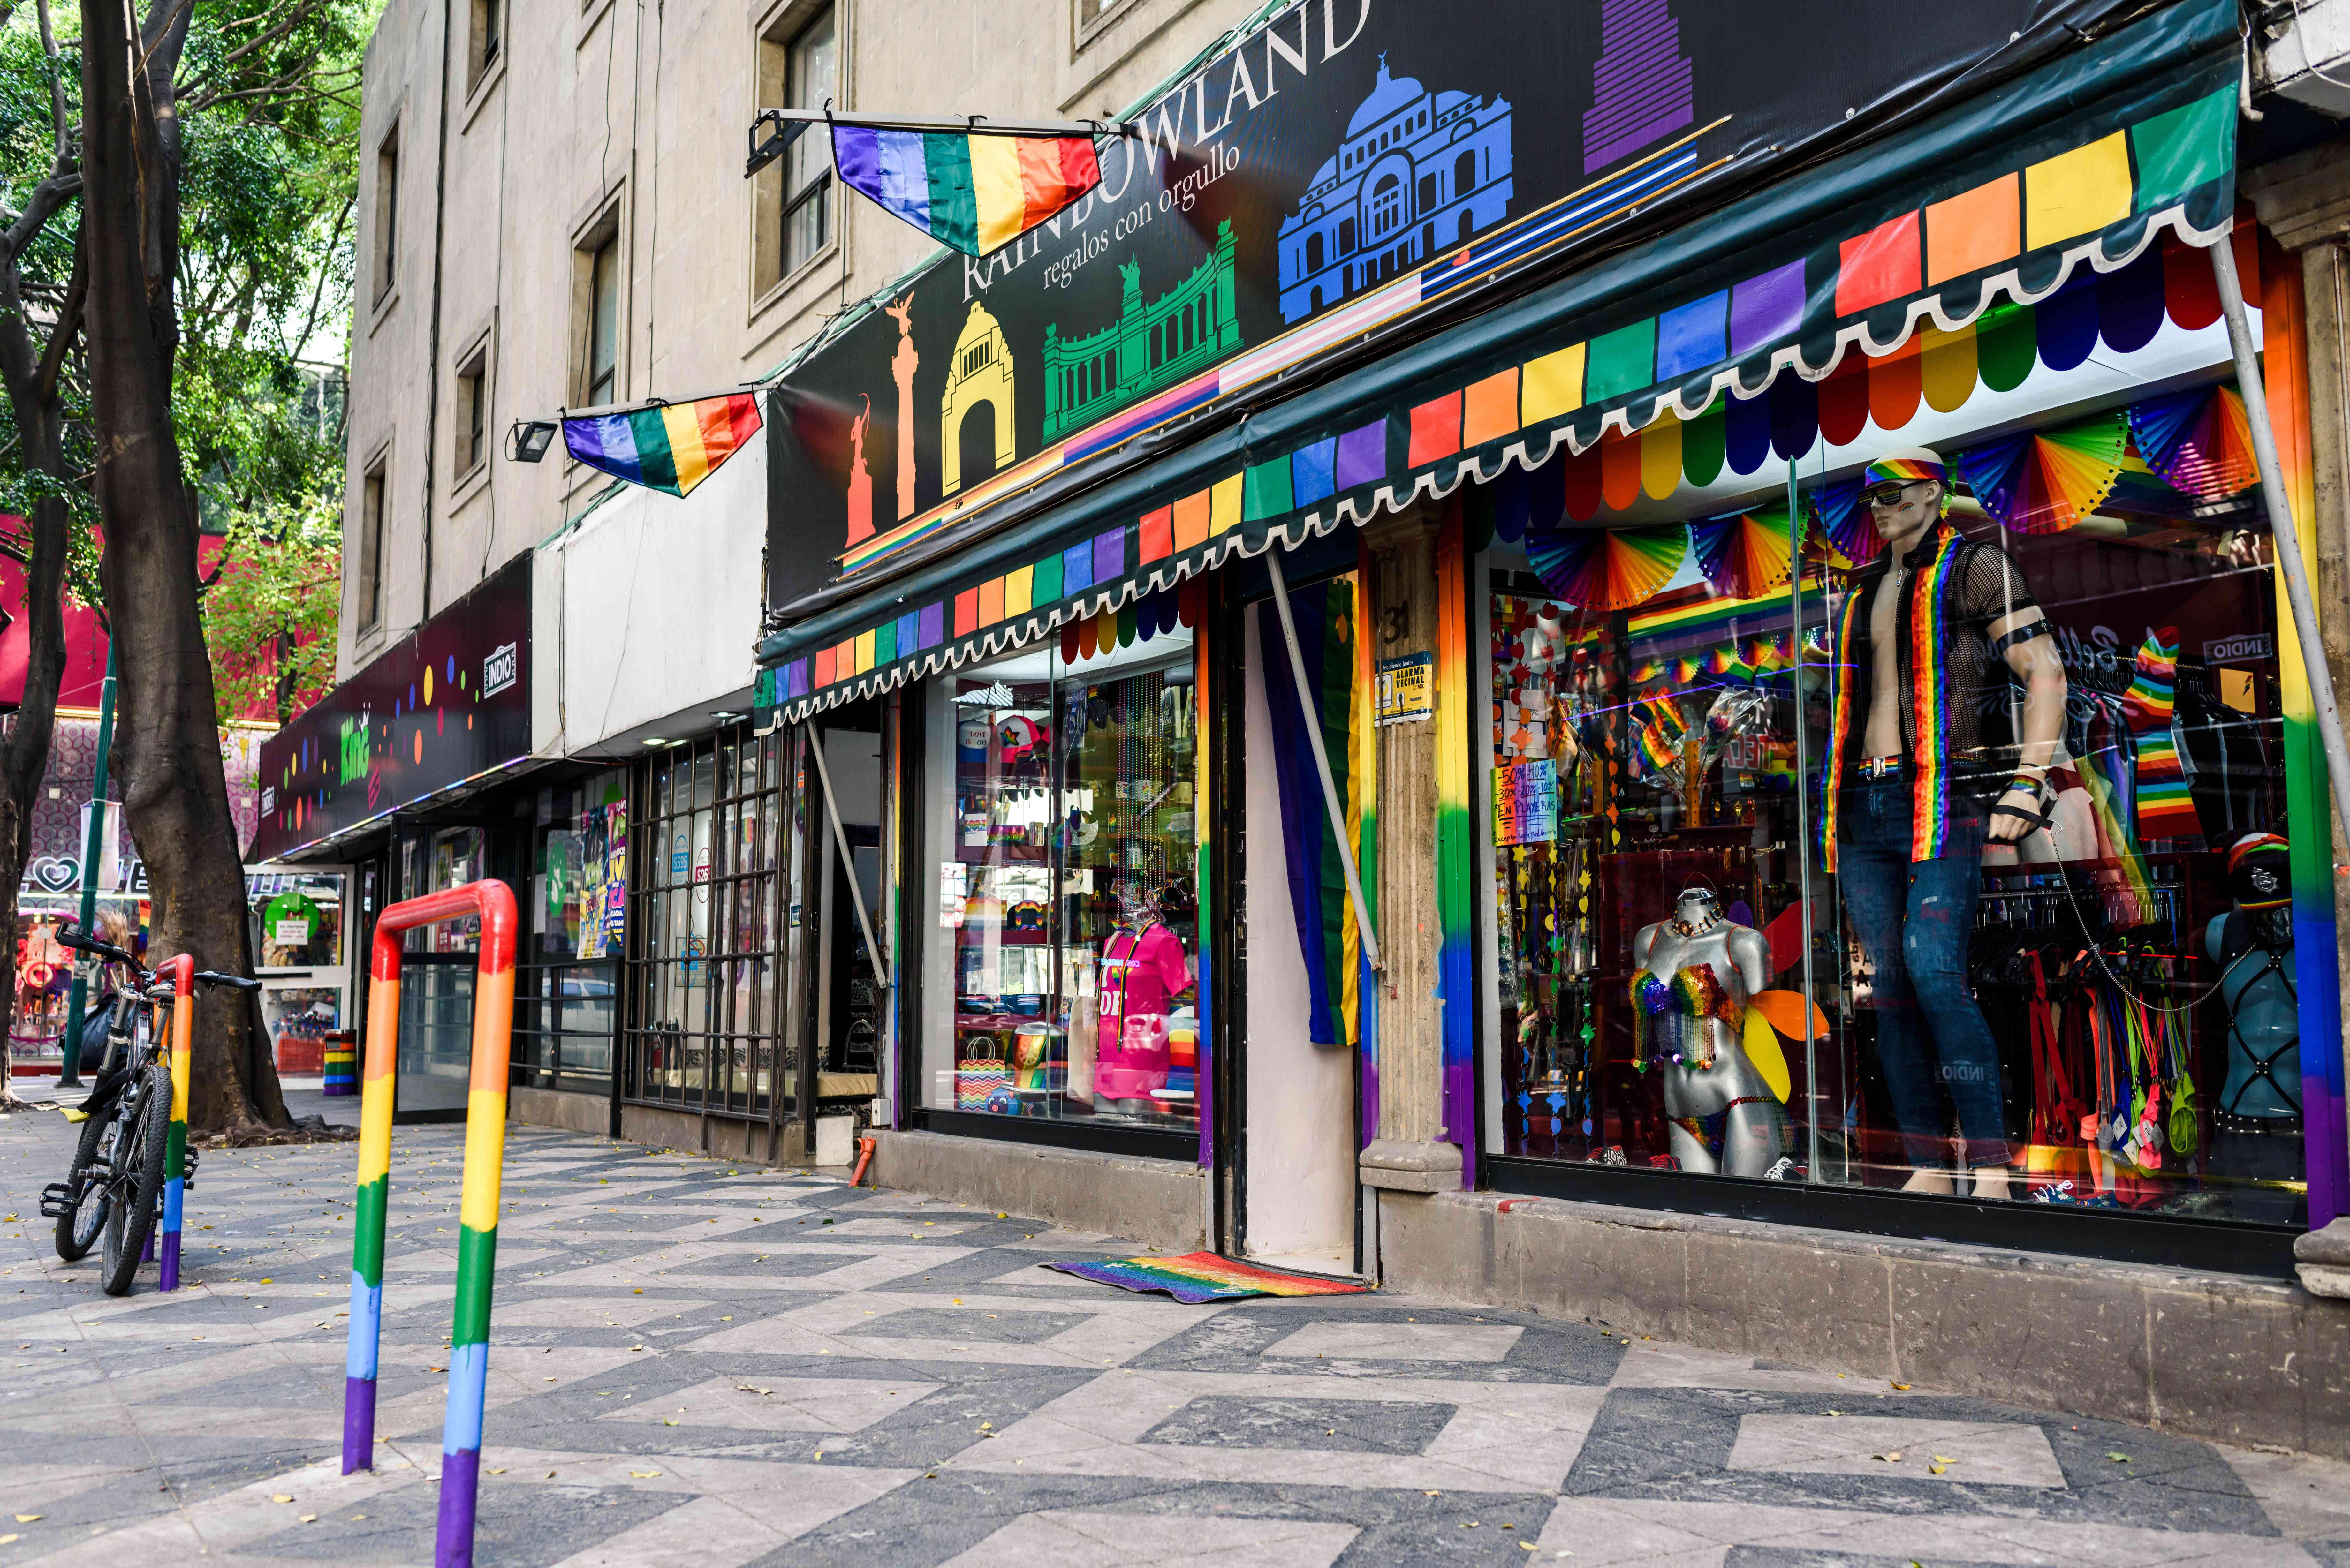 A colorful rainbow storefront in Zona Rosa